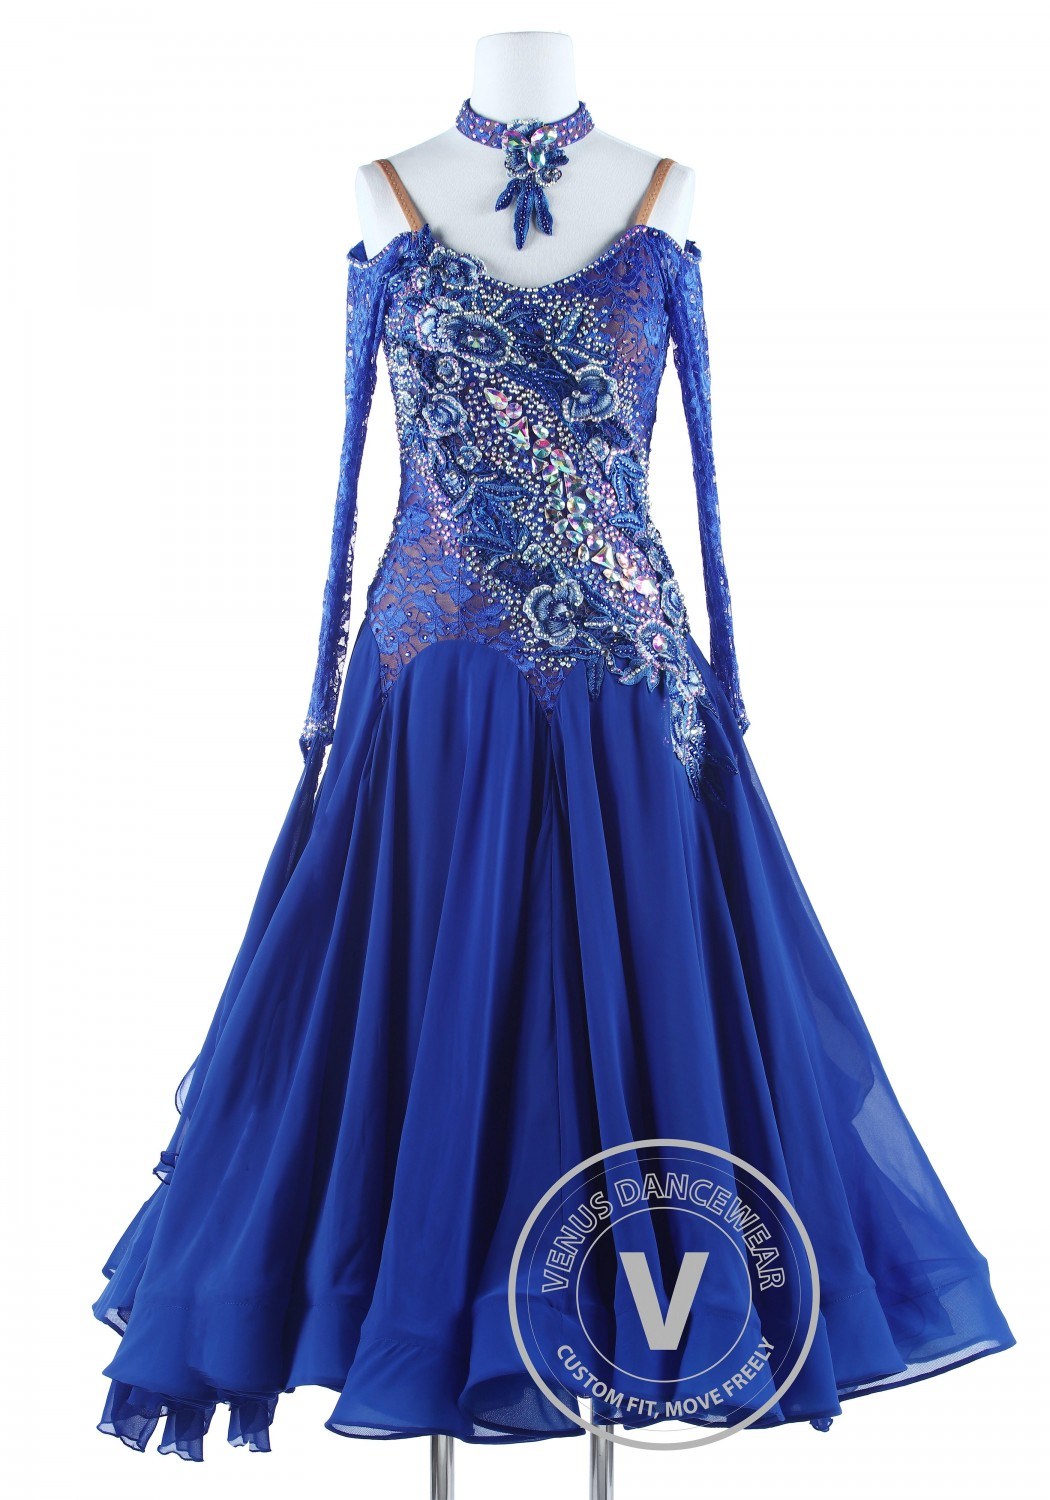 Ripple on Lace Blue Luxury Foxtrot Waltz Quickstep Competition Dress